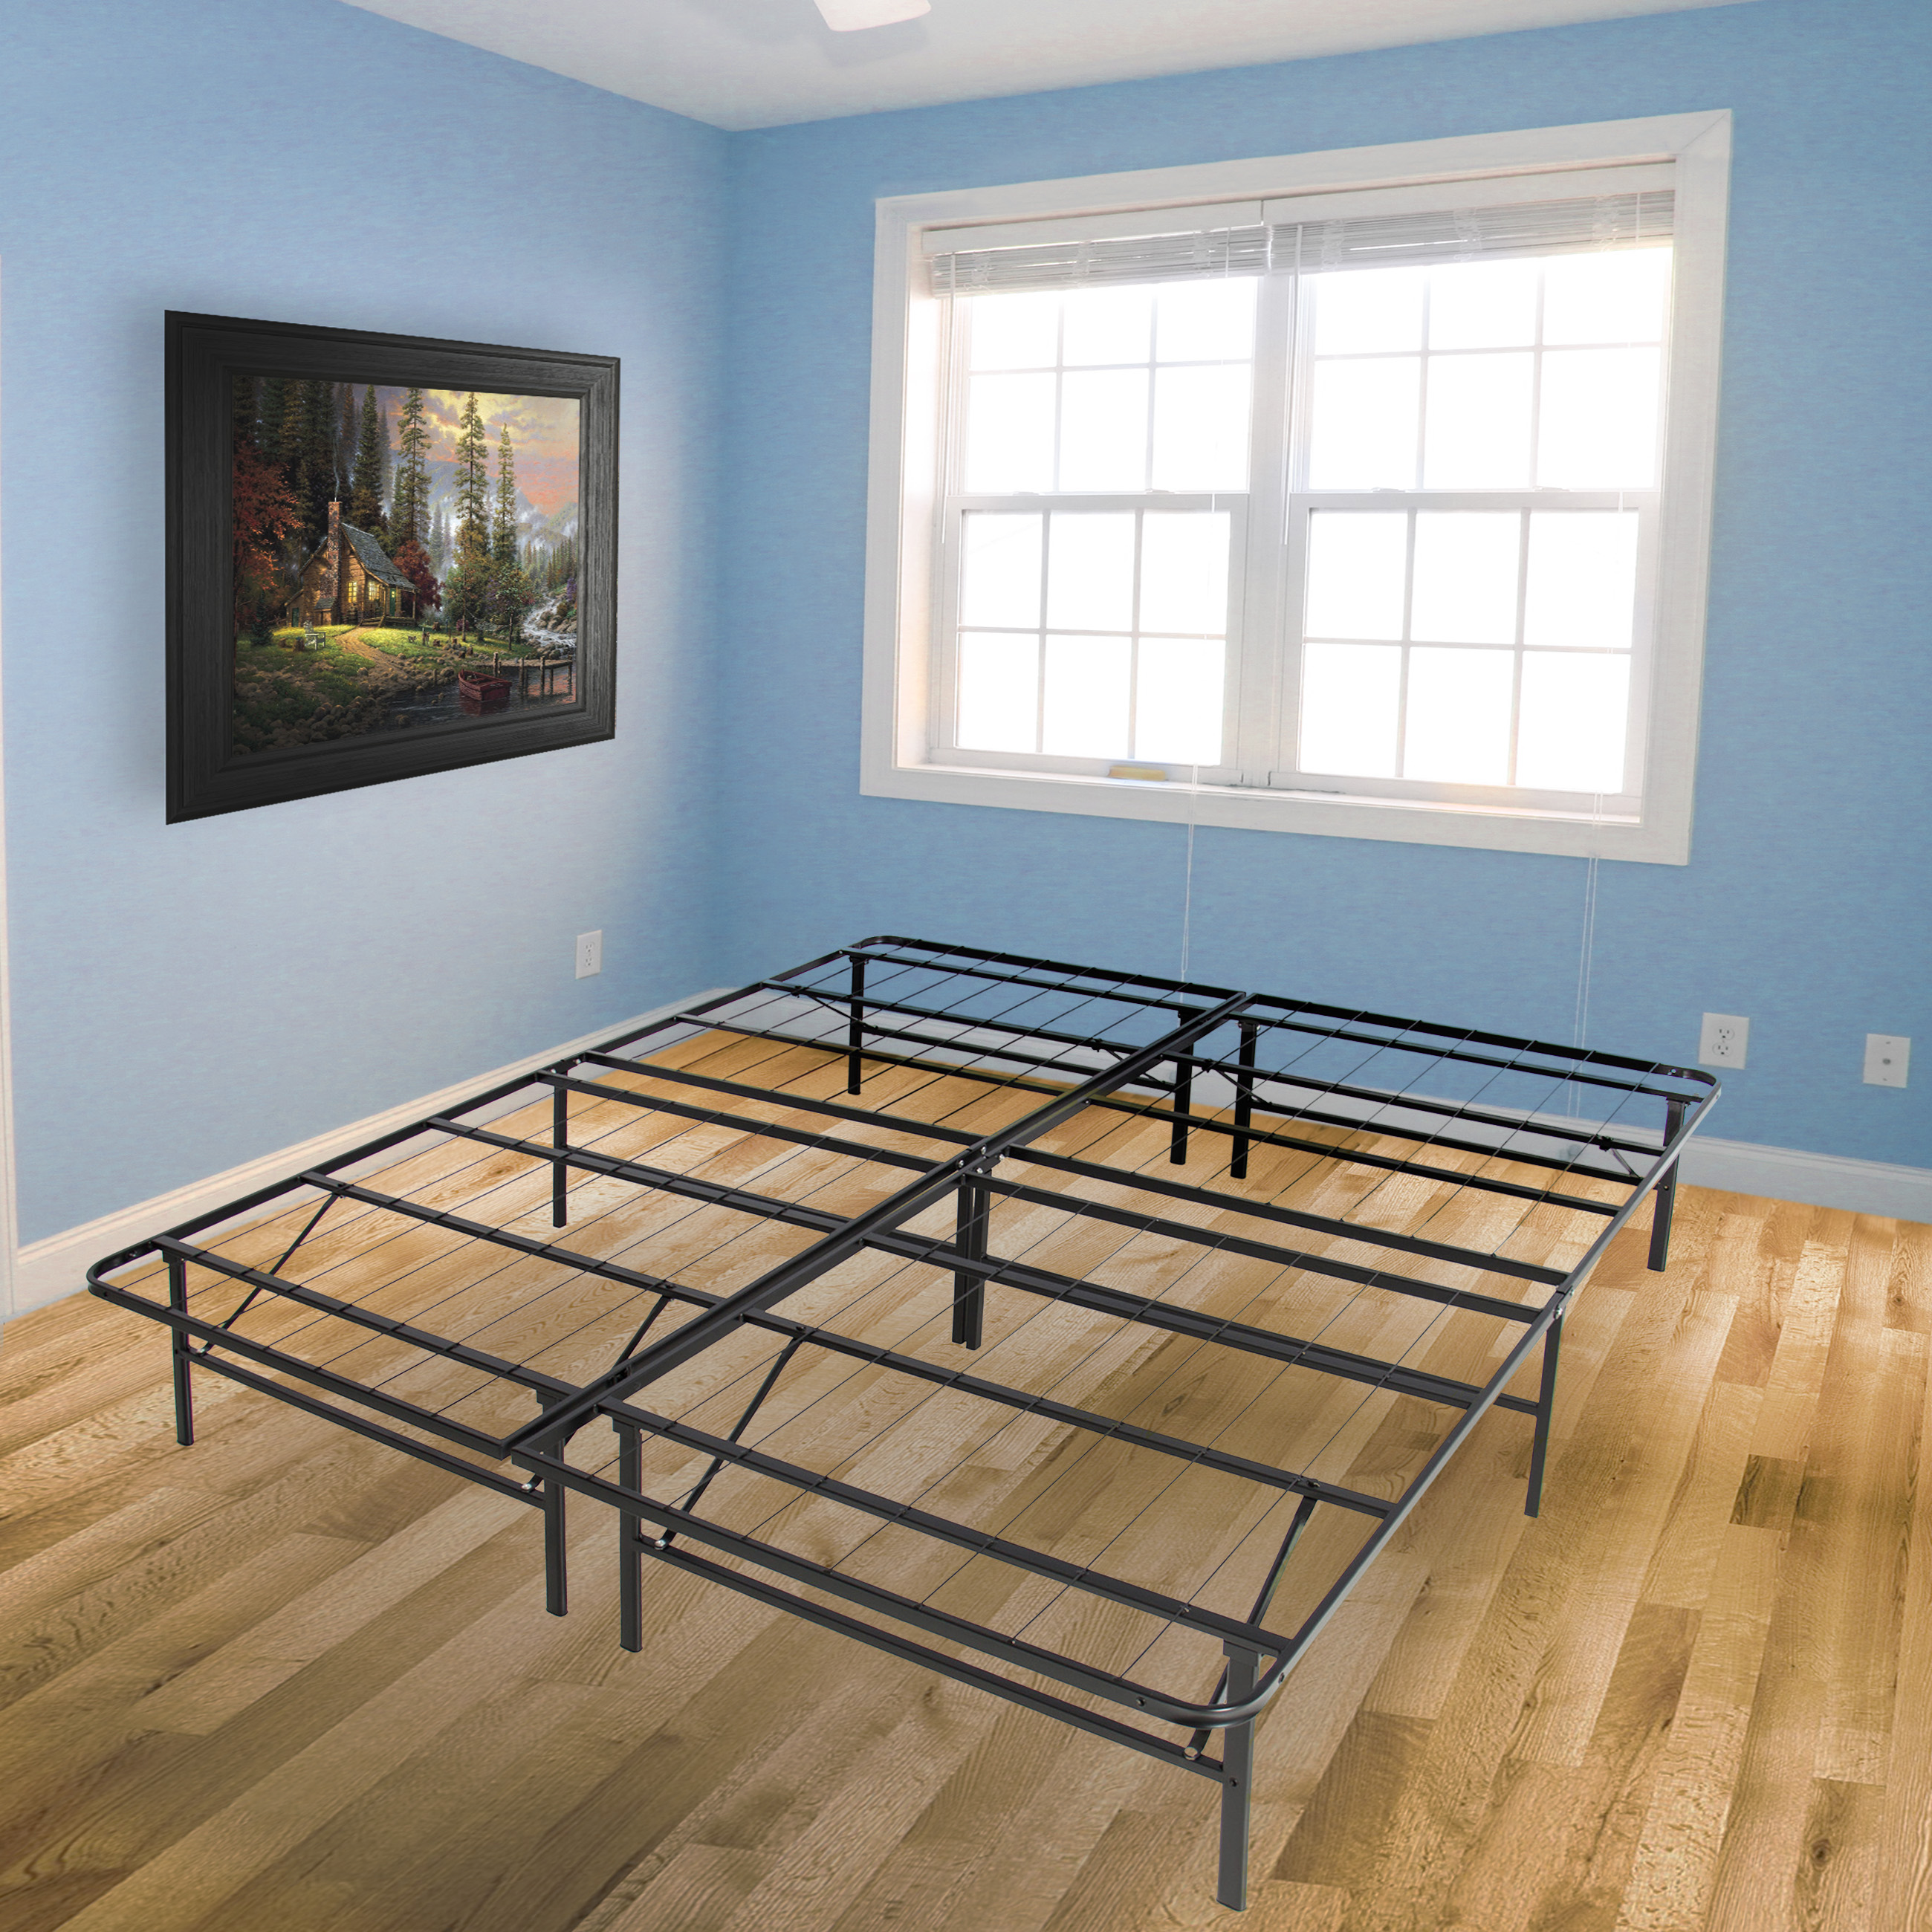 Best Choice Products Platform Metal Bed Frame Foldable No - Box Spring Bed